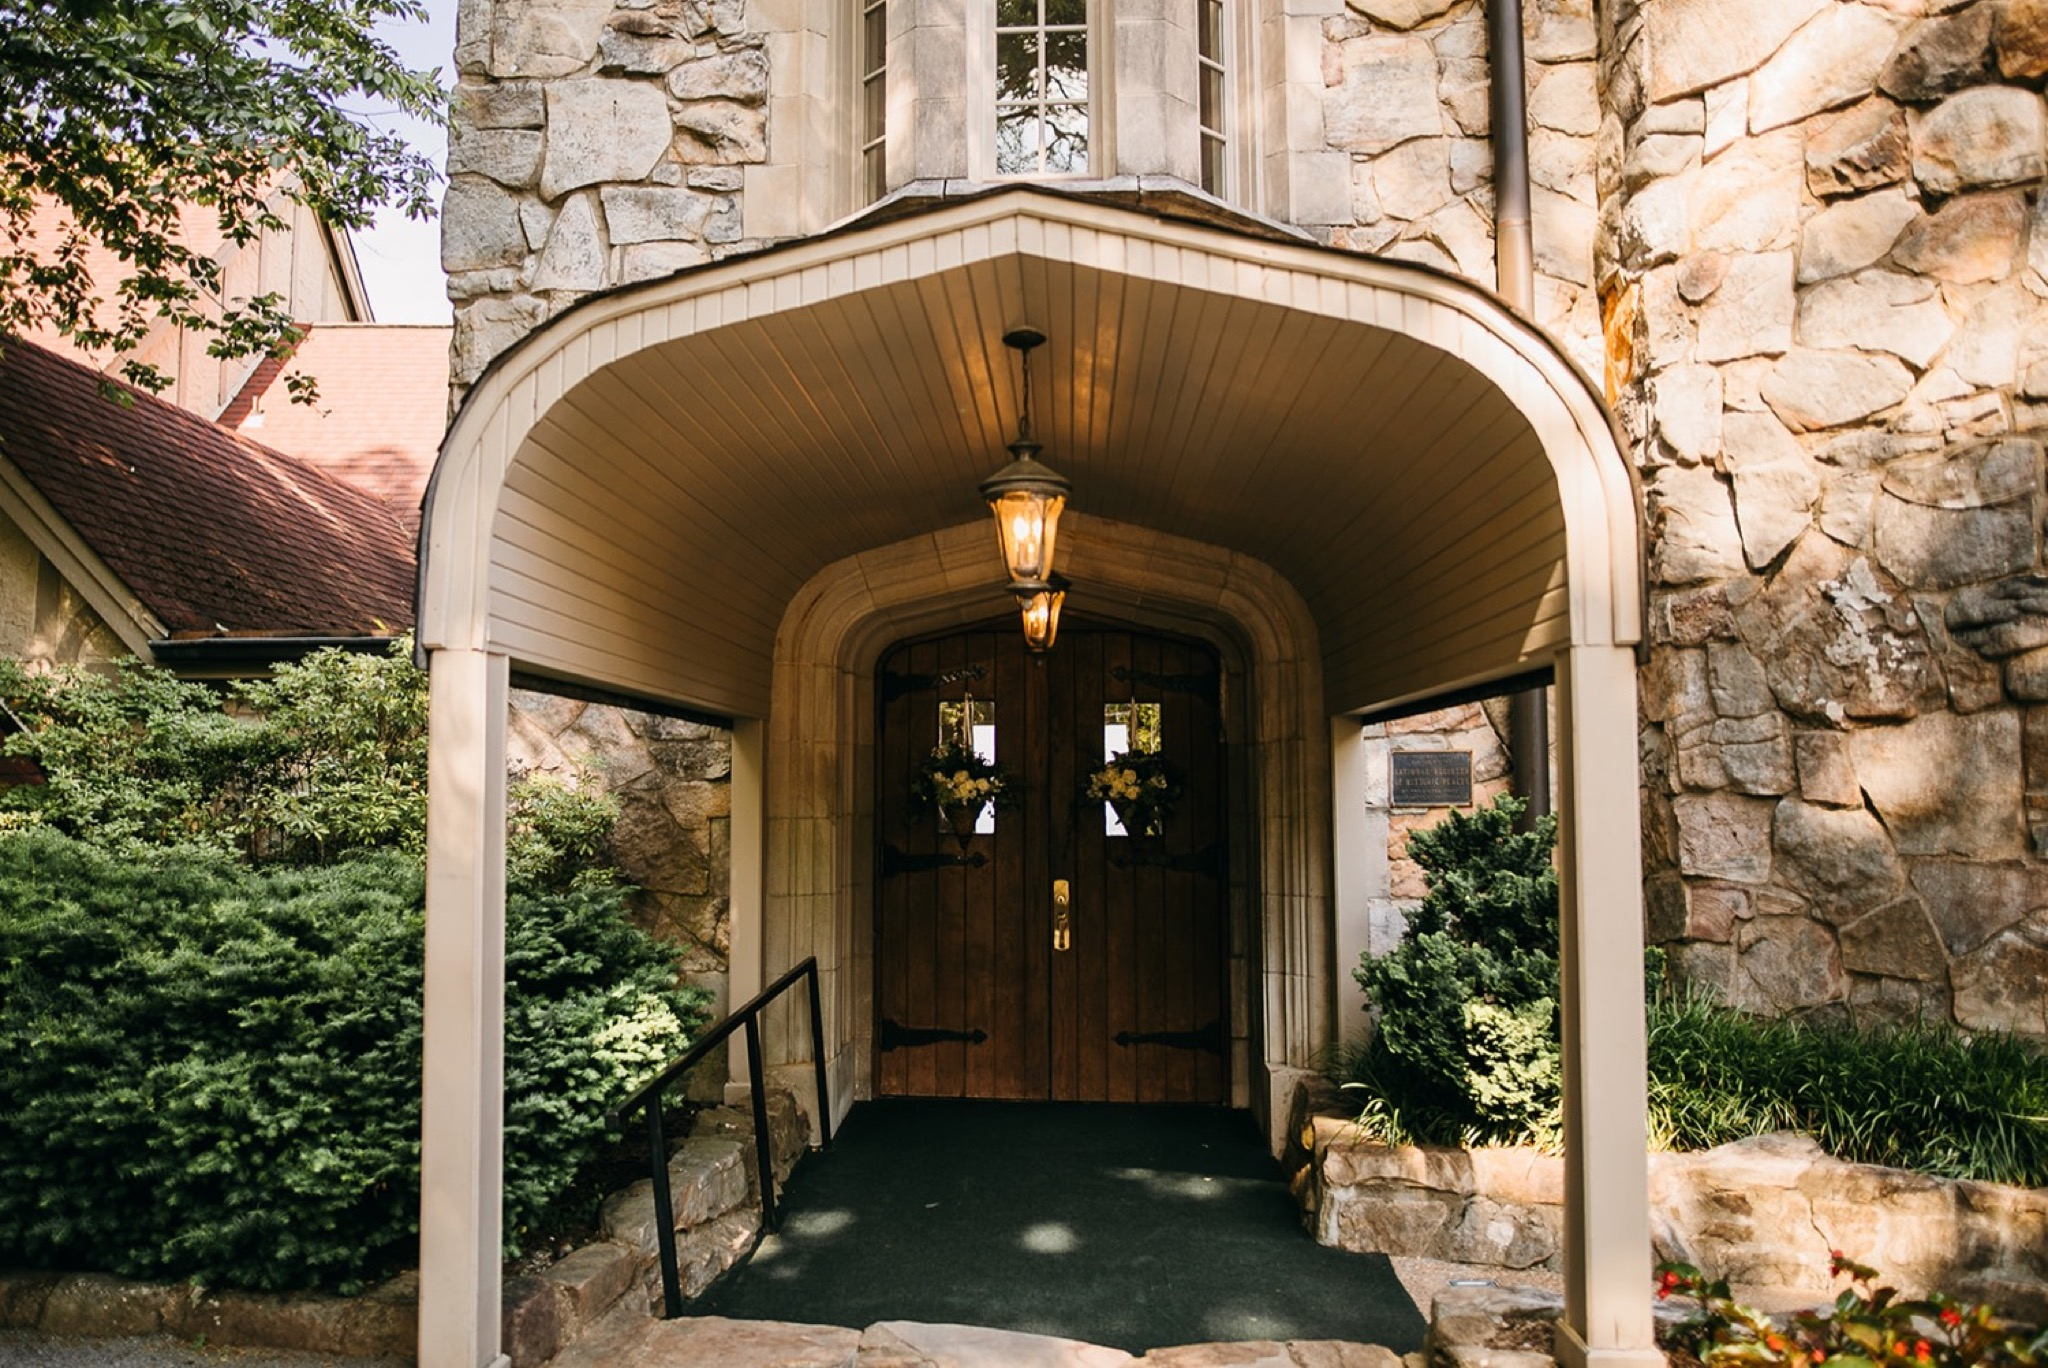 covered walkway and wooden double door entrance to Lookout Mountain's Fairyland Club